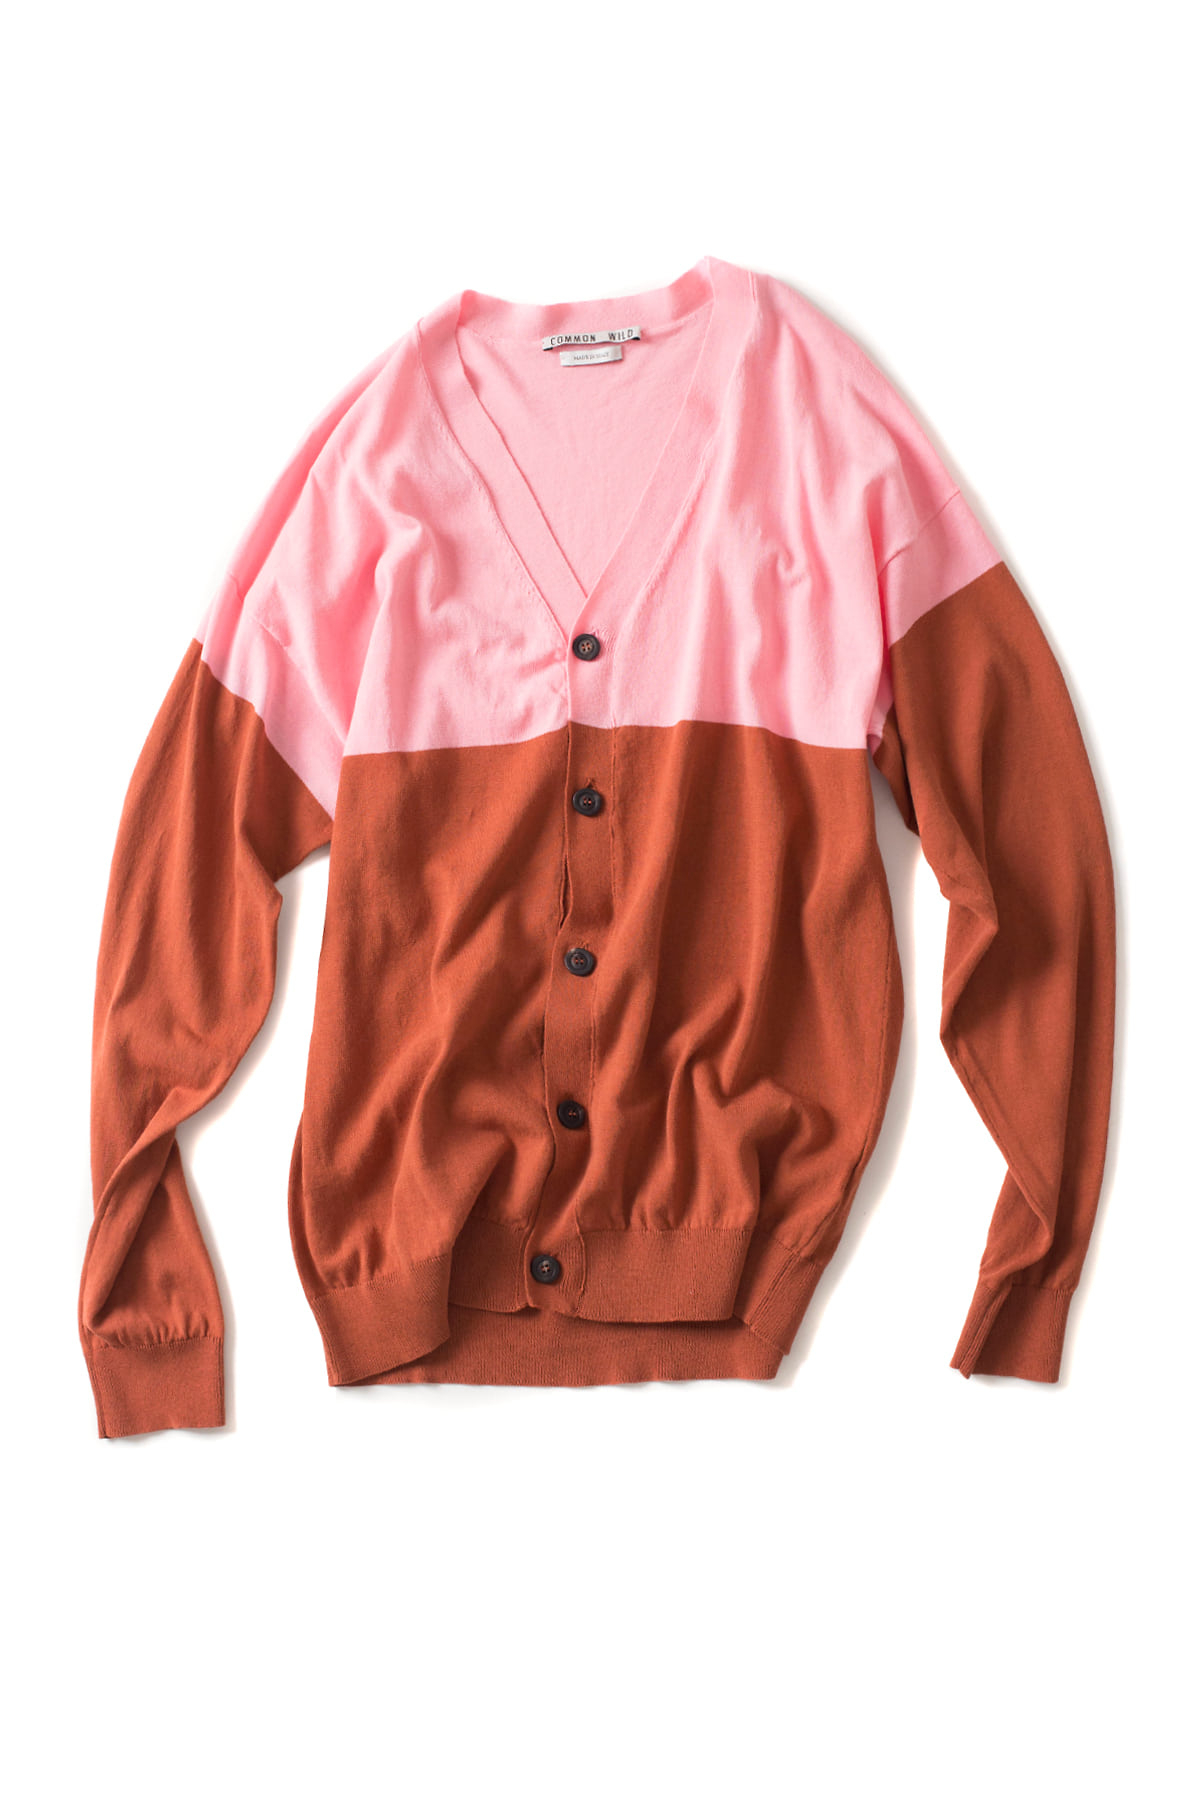 COMMON WILD : Knit Cardigan (Pink)